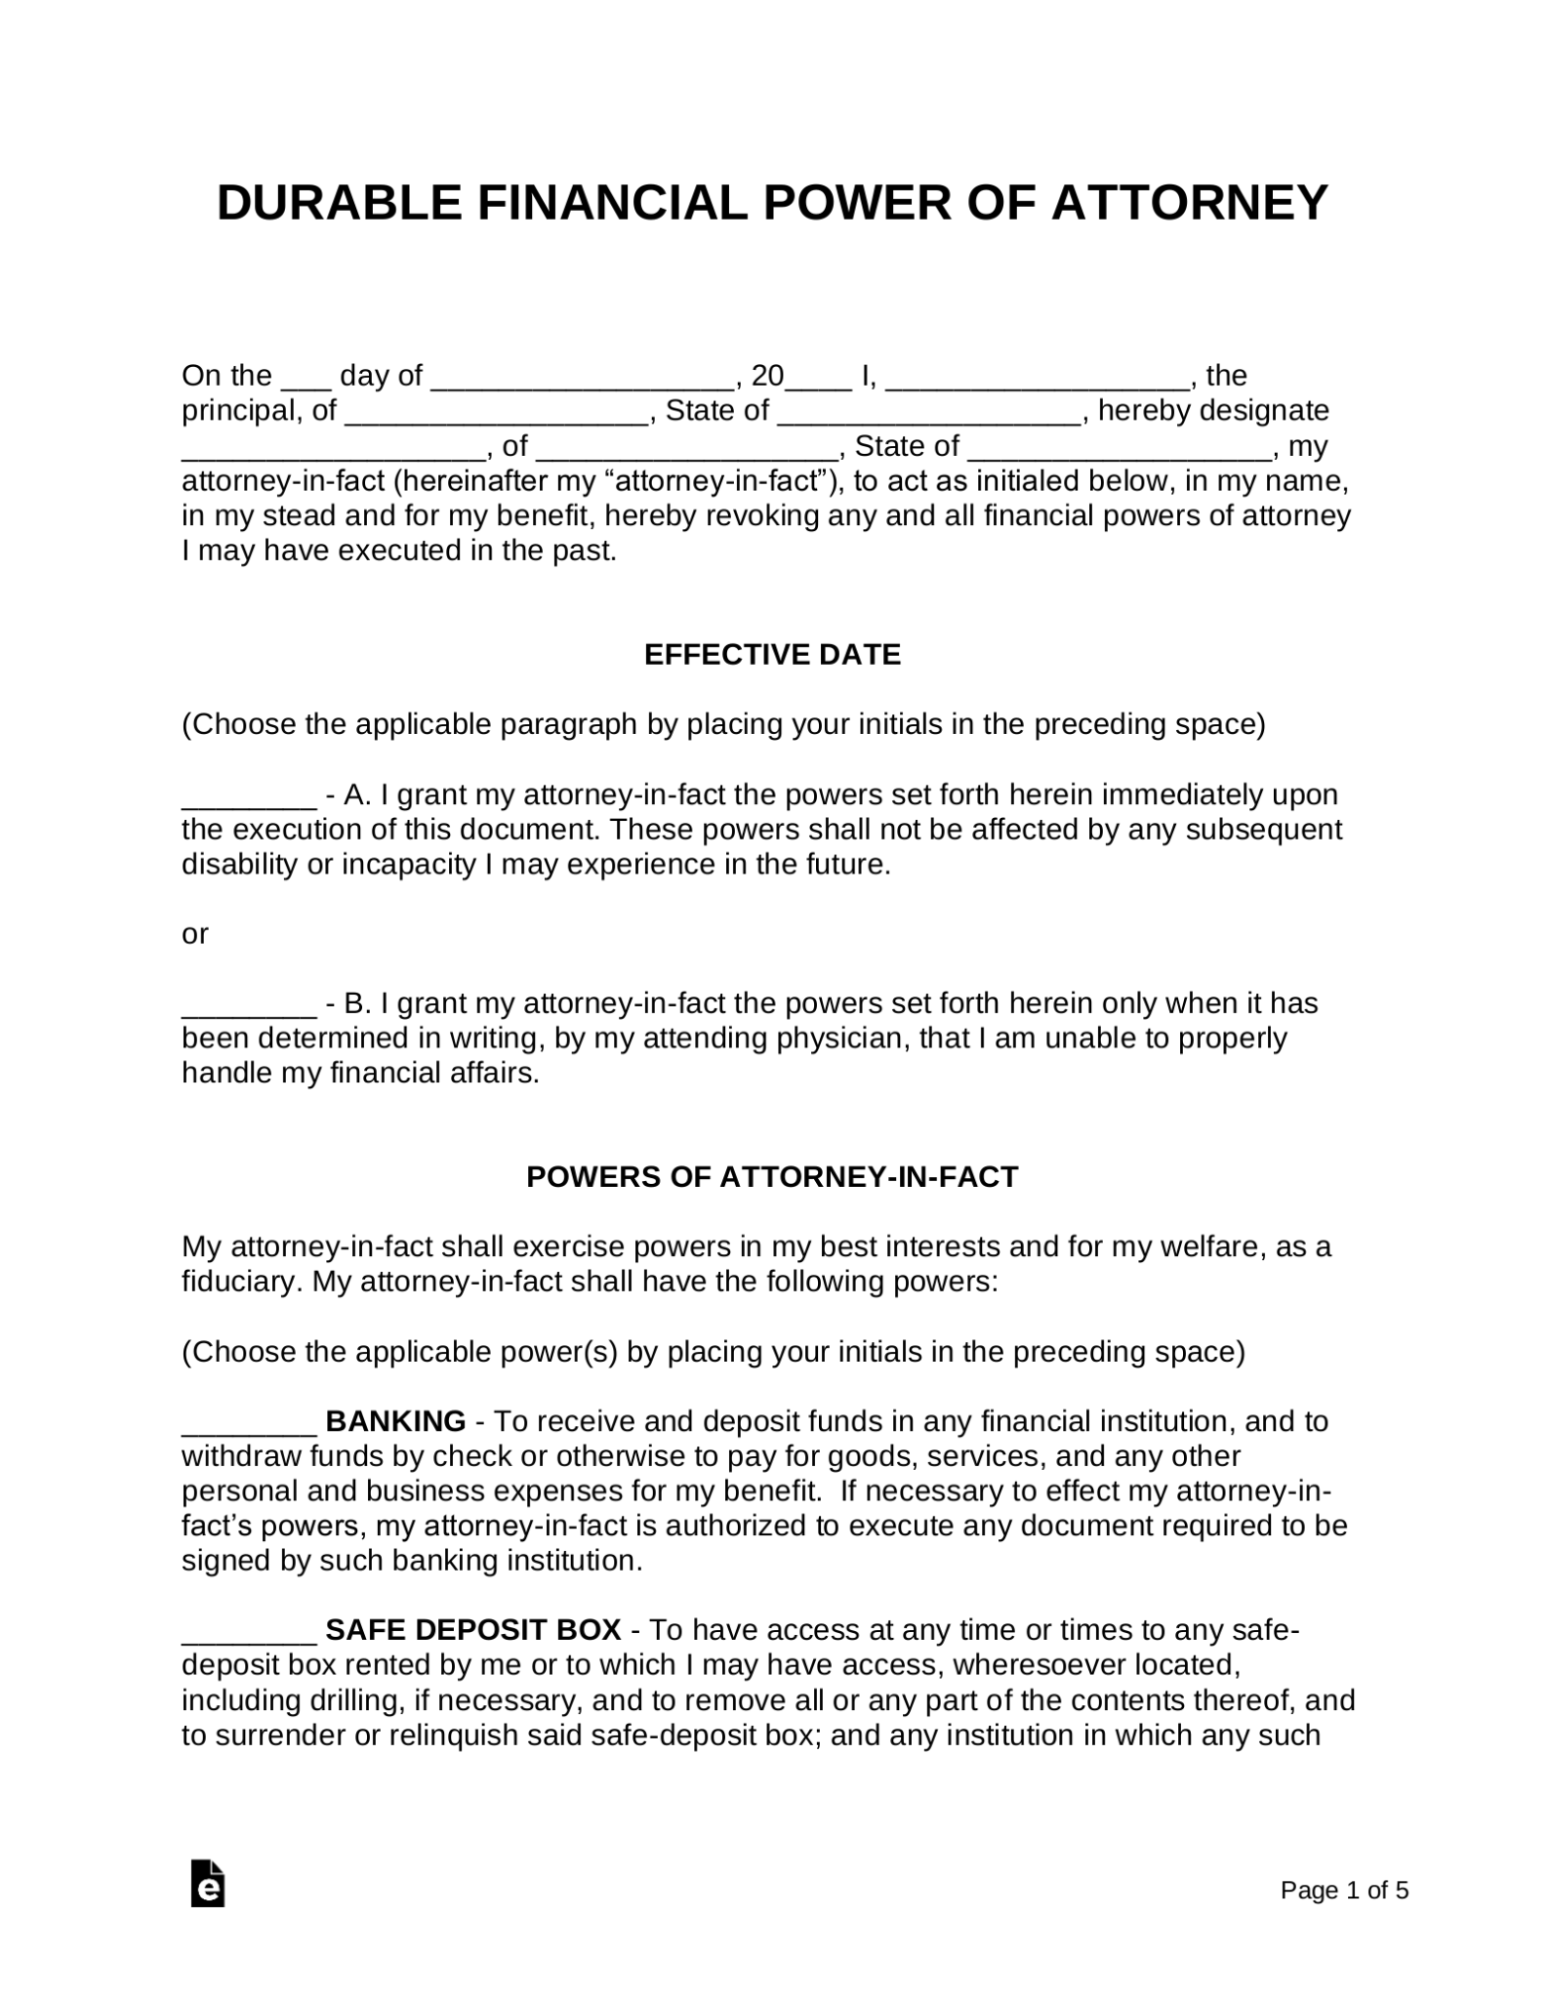 Sample first page of a durable power of attorney